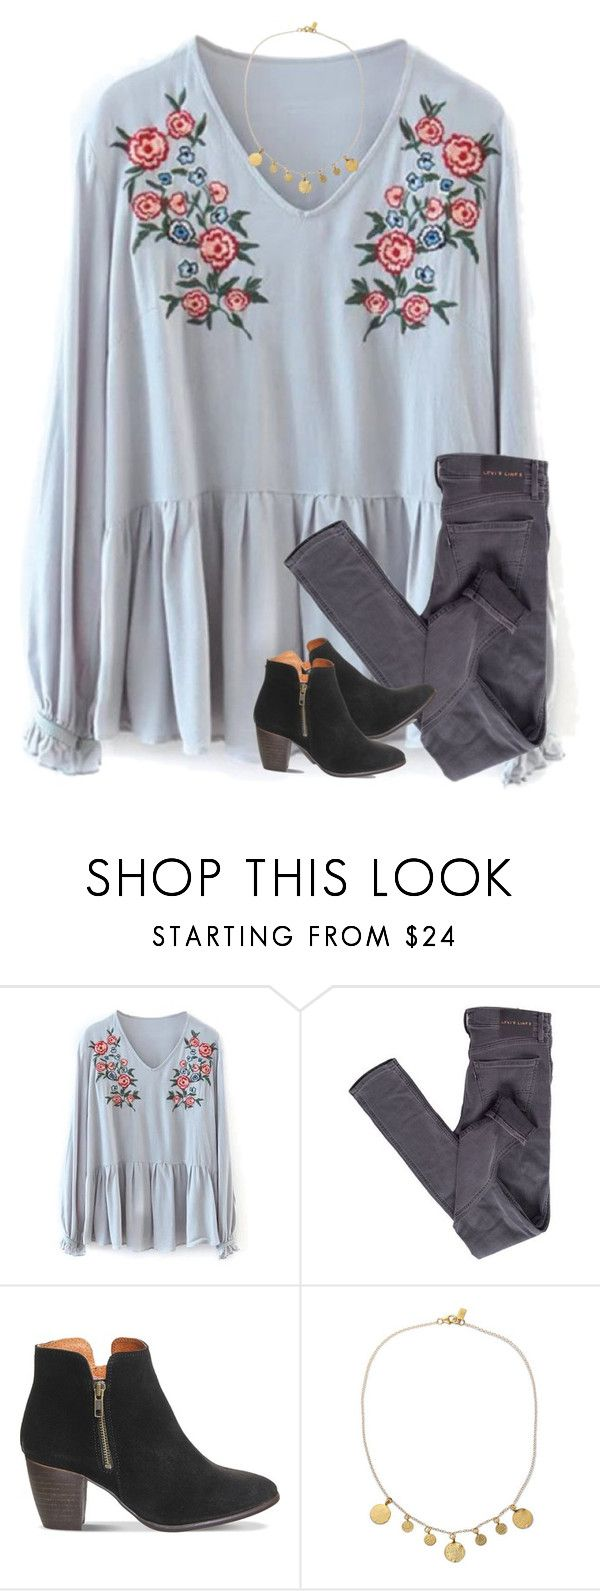 """""""ugh my ex keeps texting me"""" by southerngirl03 ❤ liked on Polyvore featuring Levi's, Office and Electric Picks"""